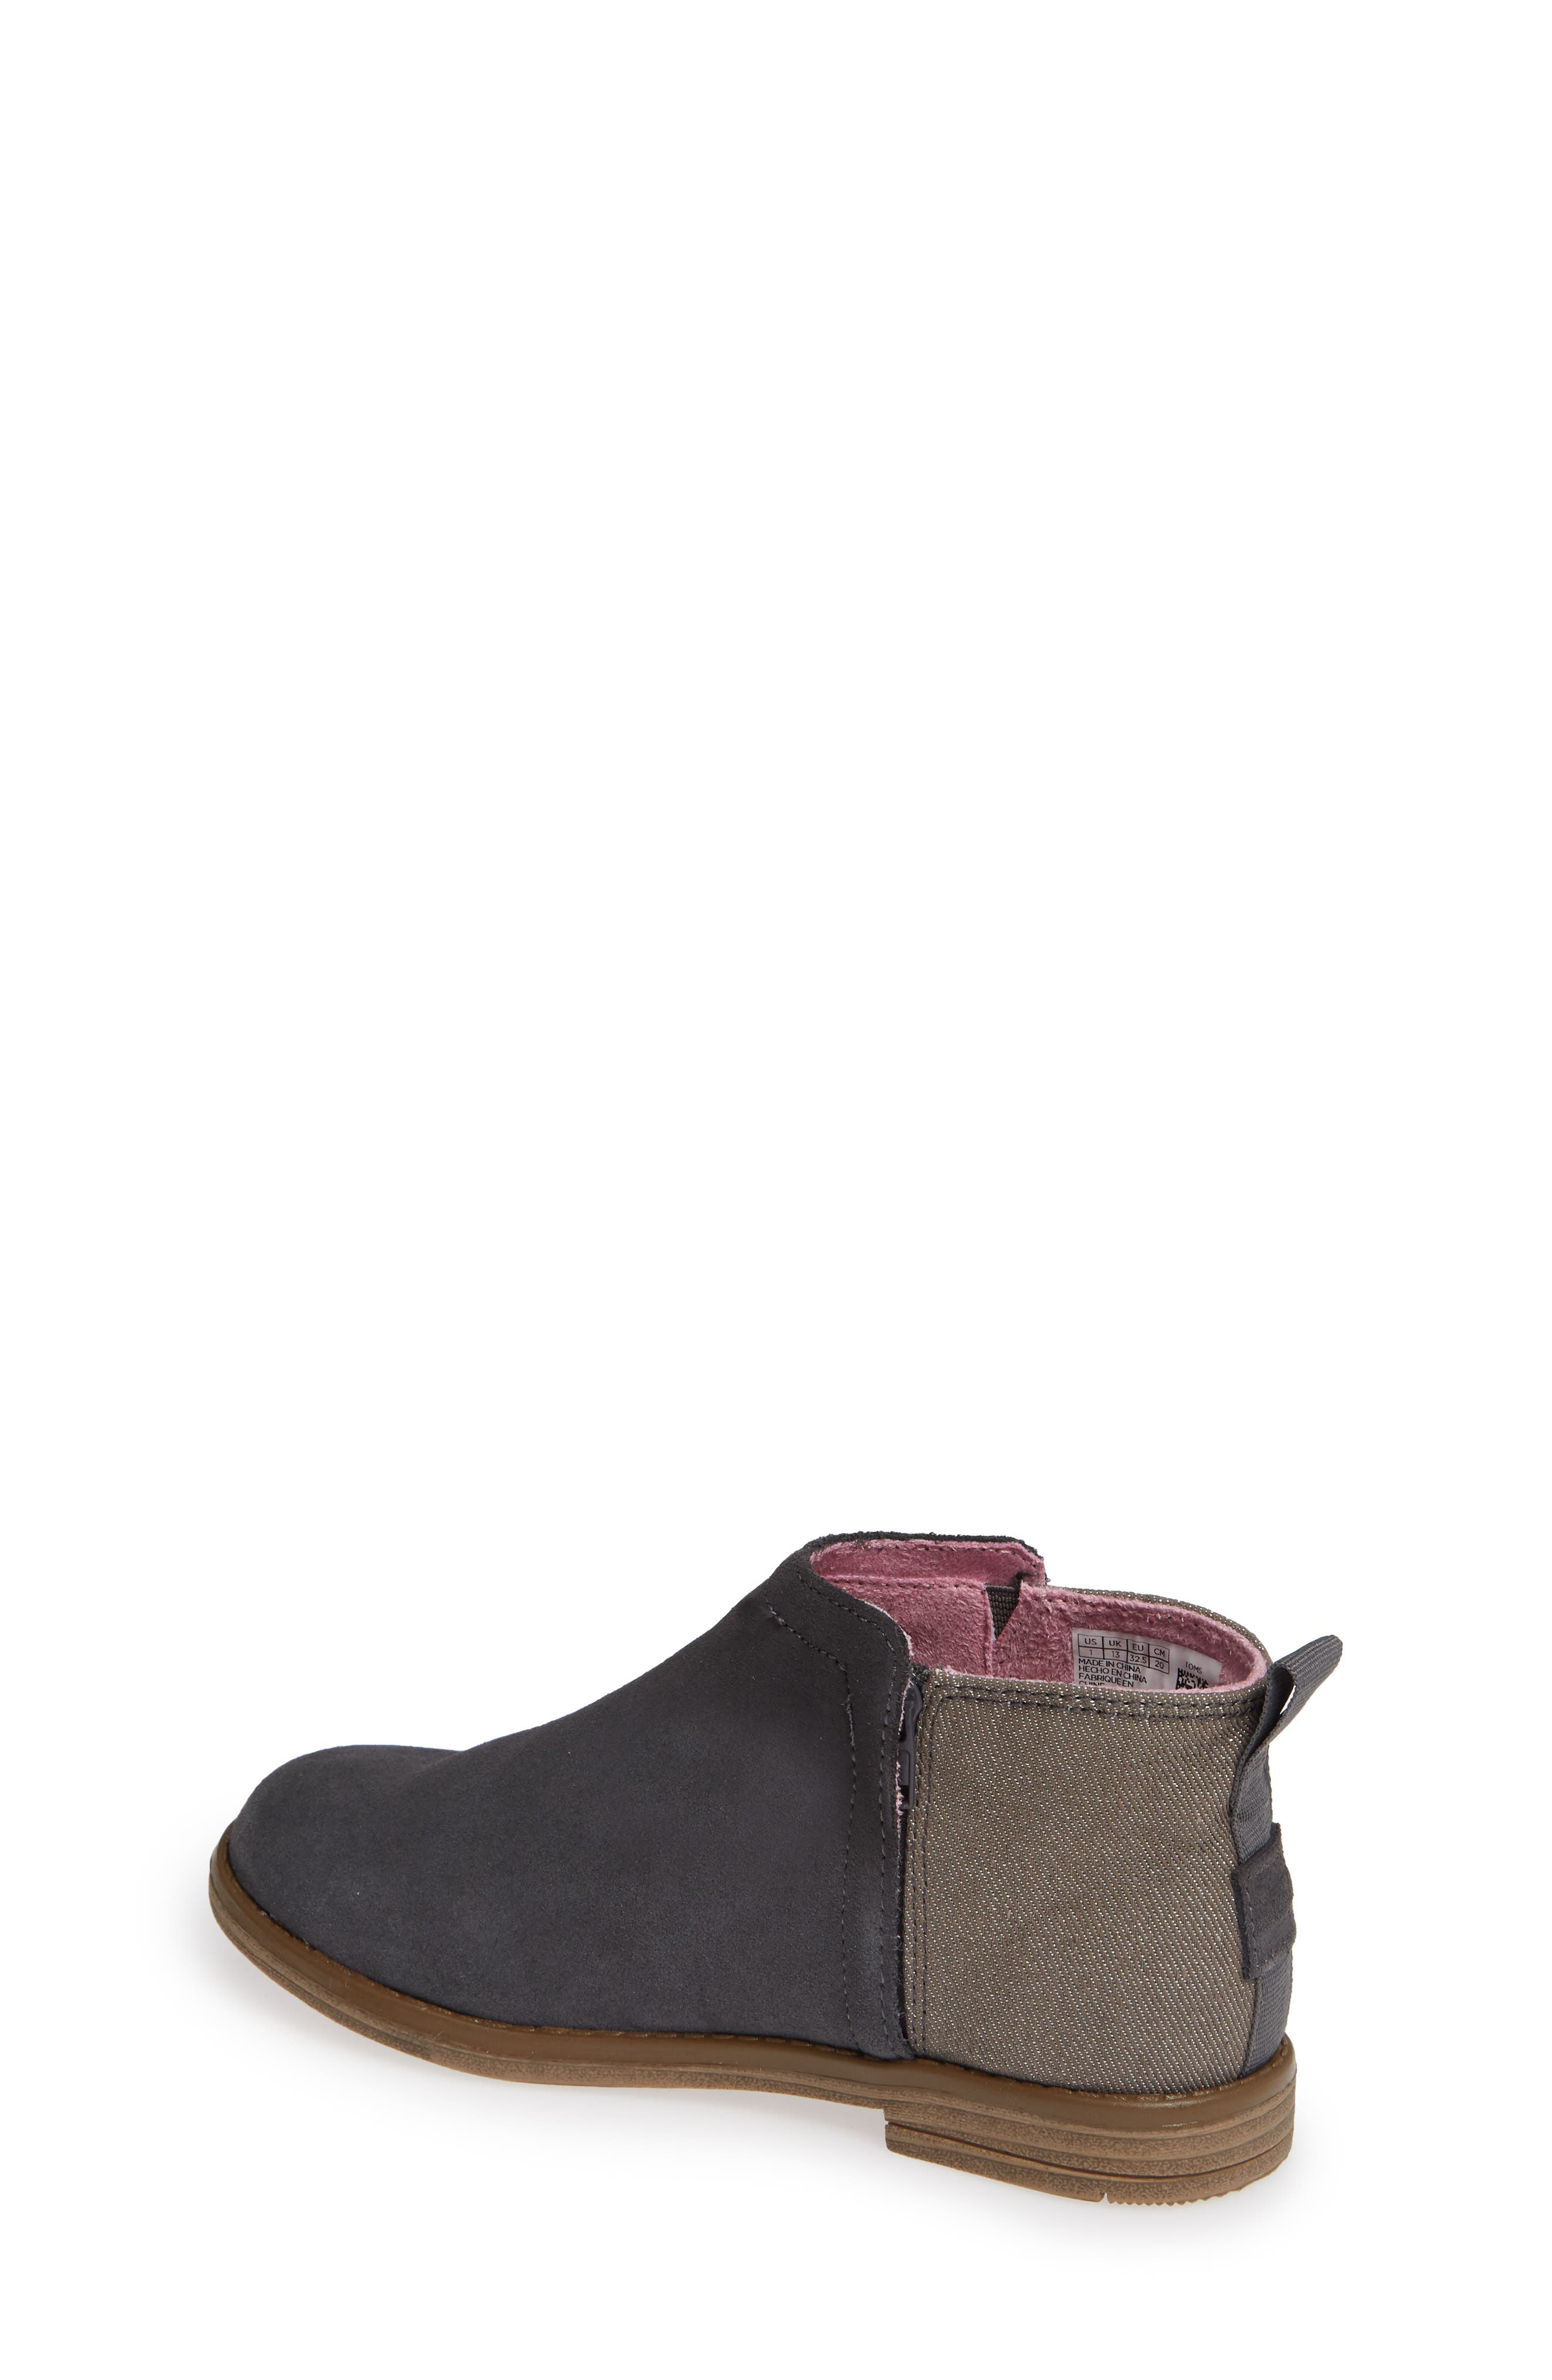 Deia Mixed Media Bootie,                             Alternate thumbnail 2, color,                             Grey Suede Glimmer